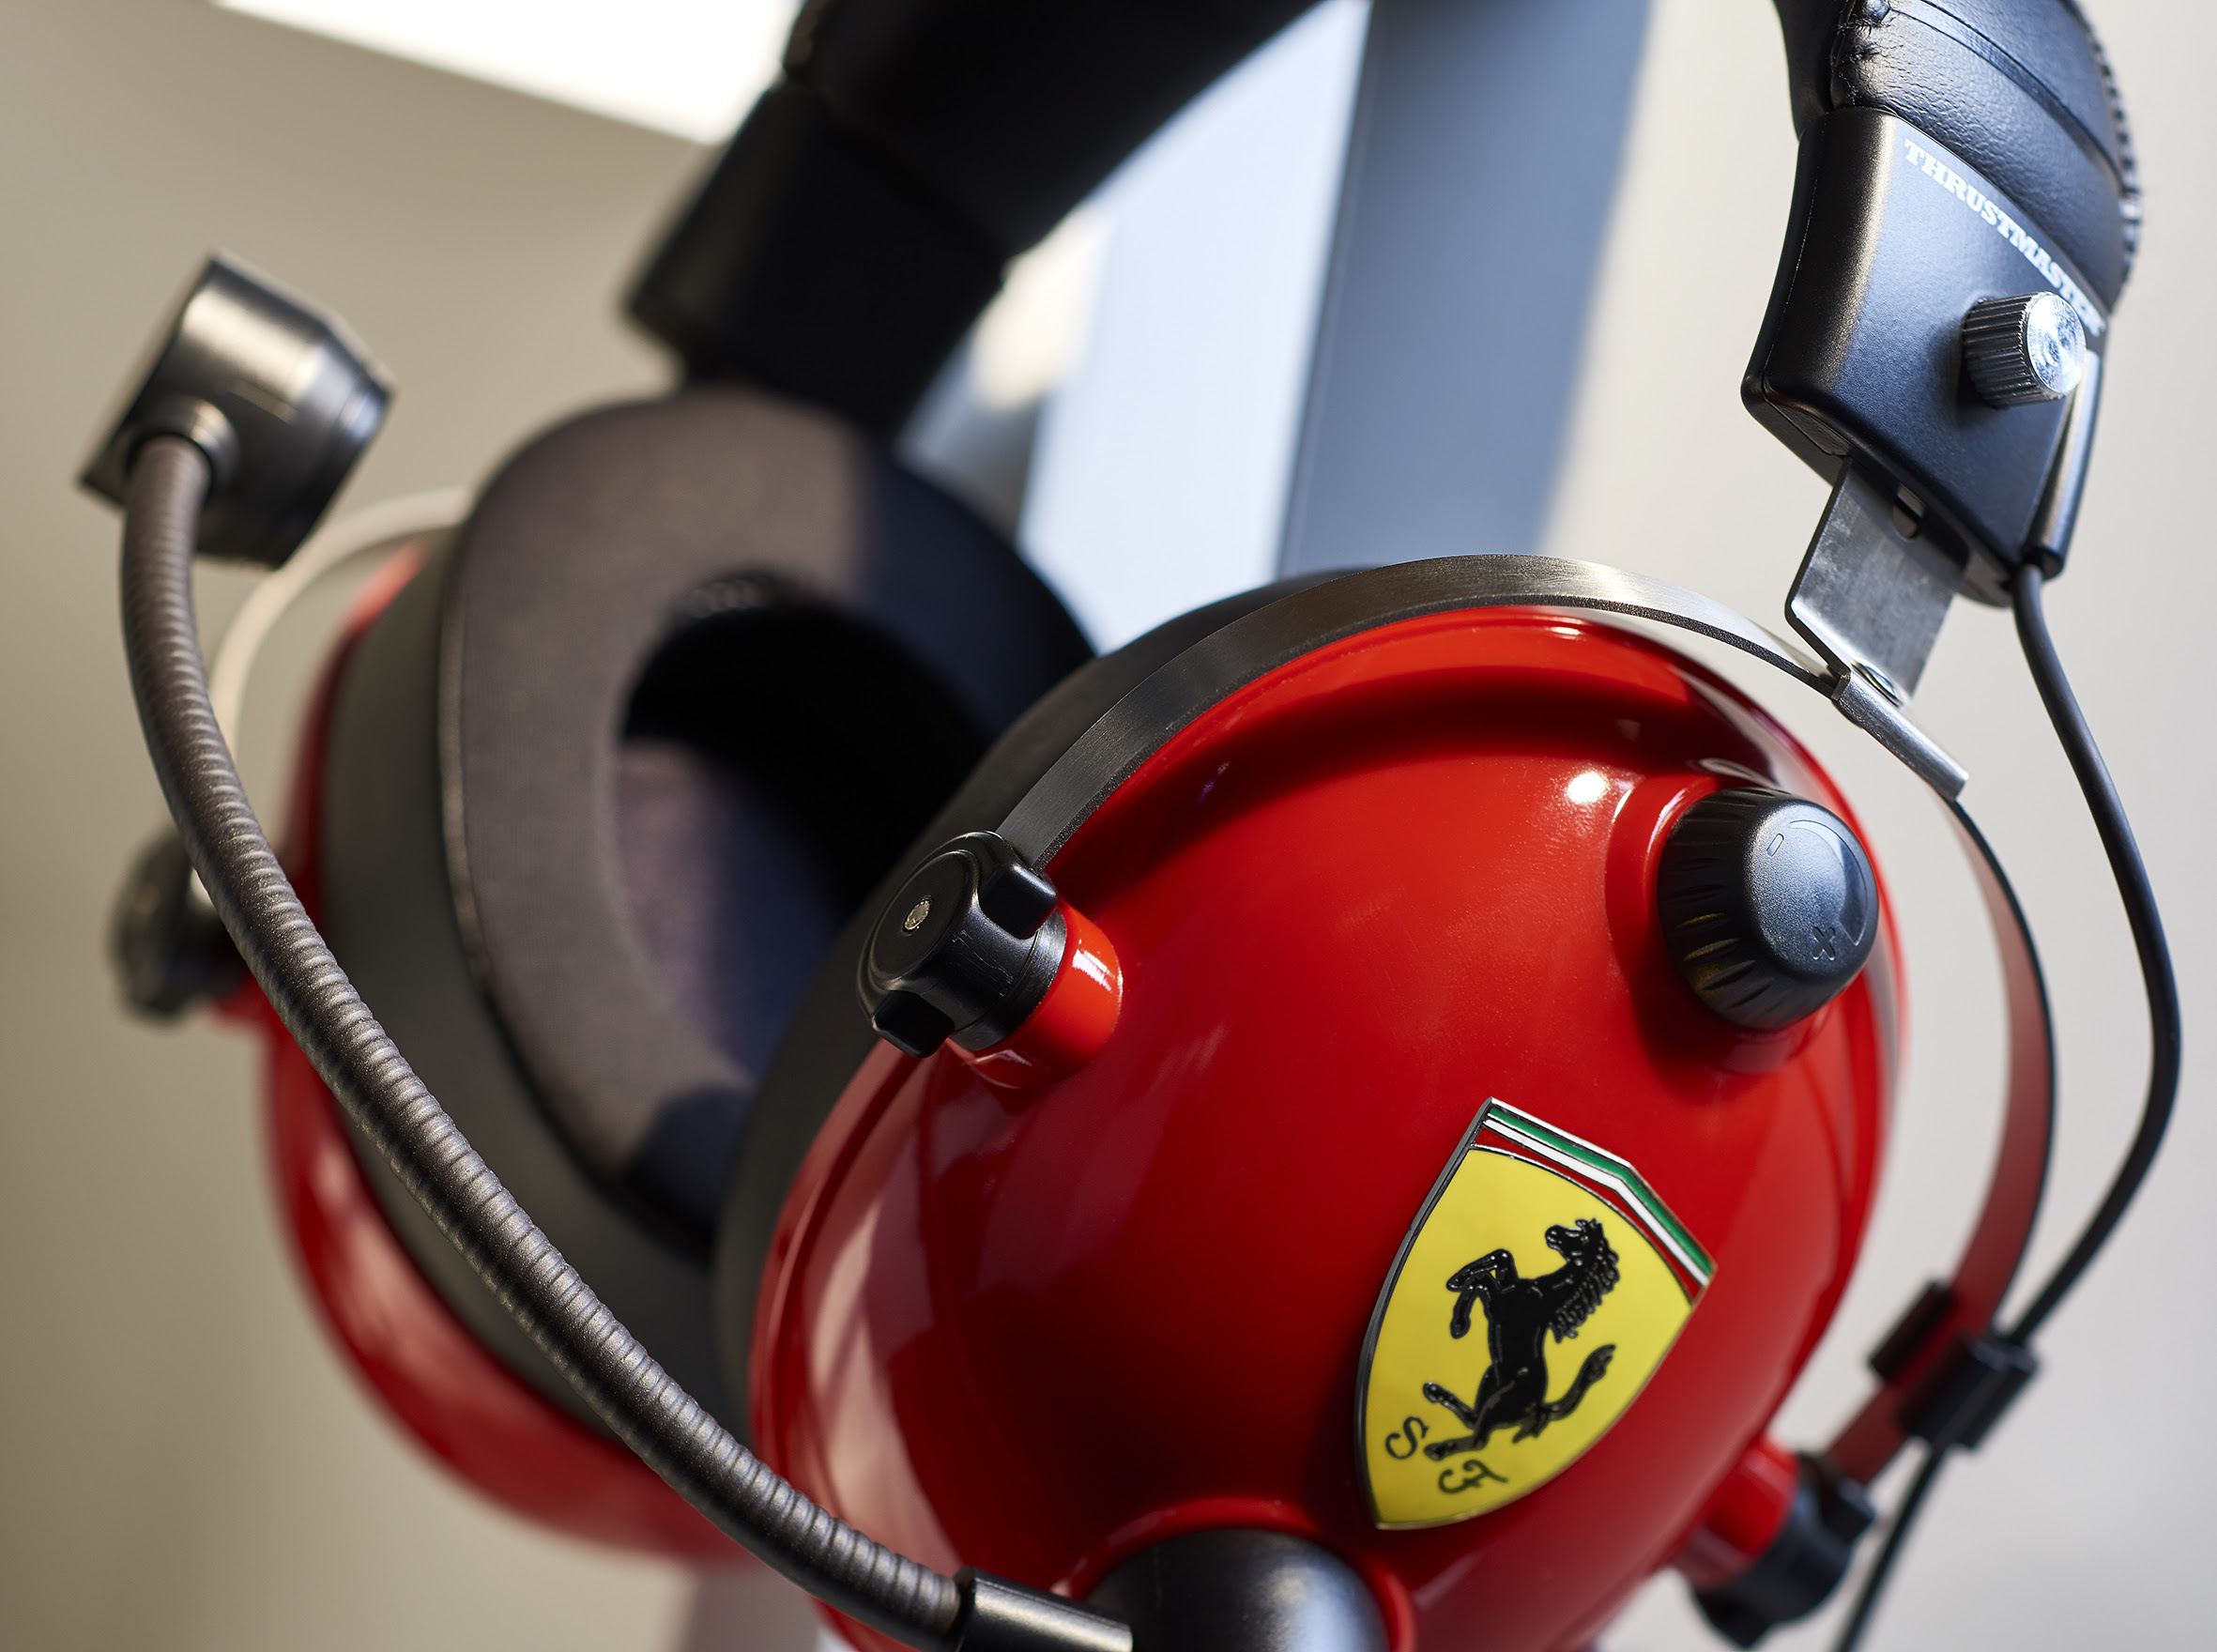 T-RacingFerrariEd_Lifestlyle_3.jpg